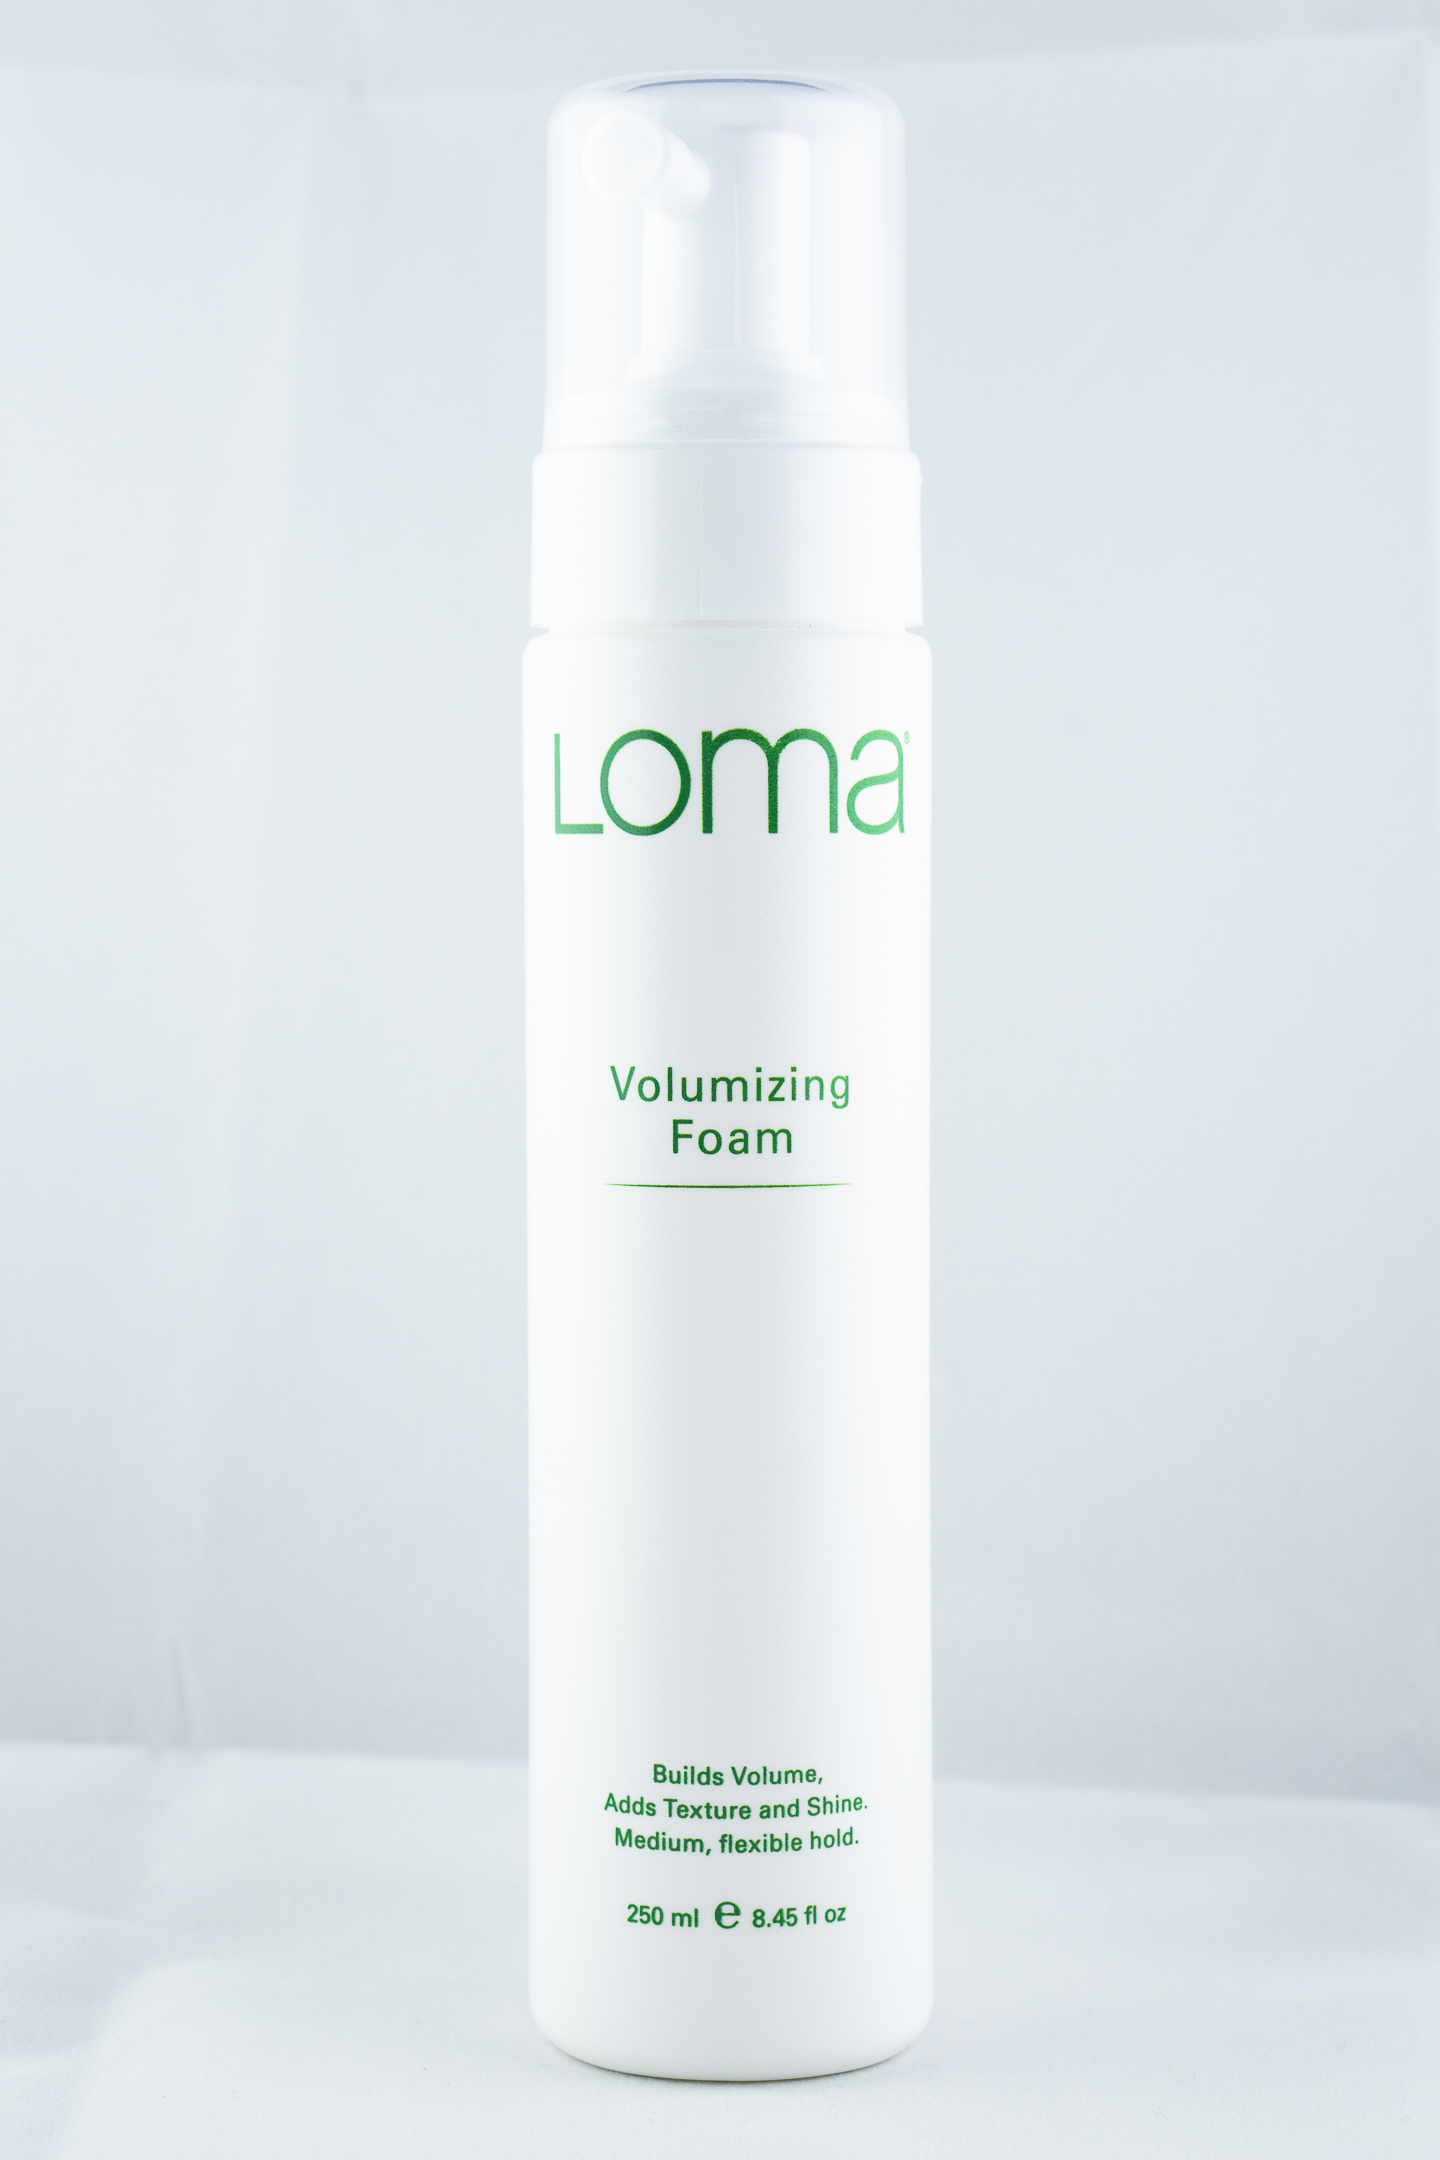 Loma Volumizing Foam | Volume Foam | Studio Trio Hair Salon